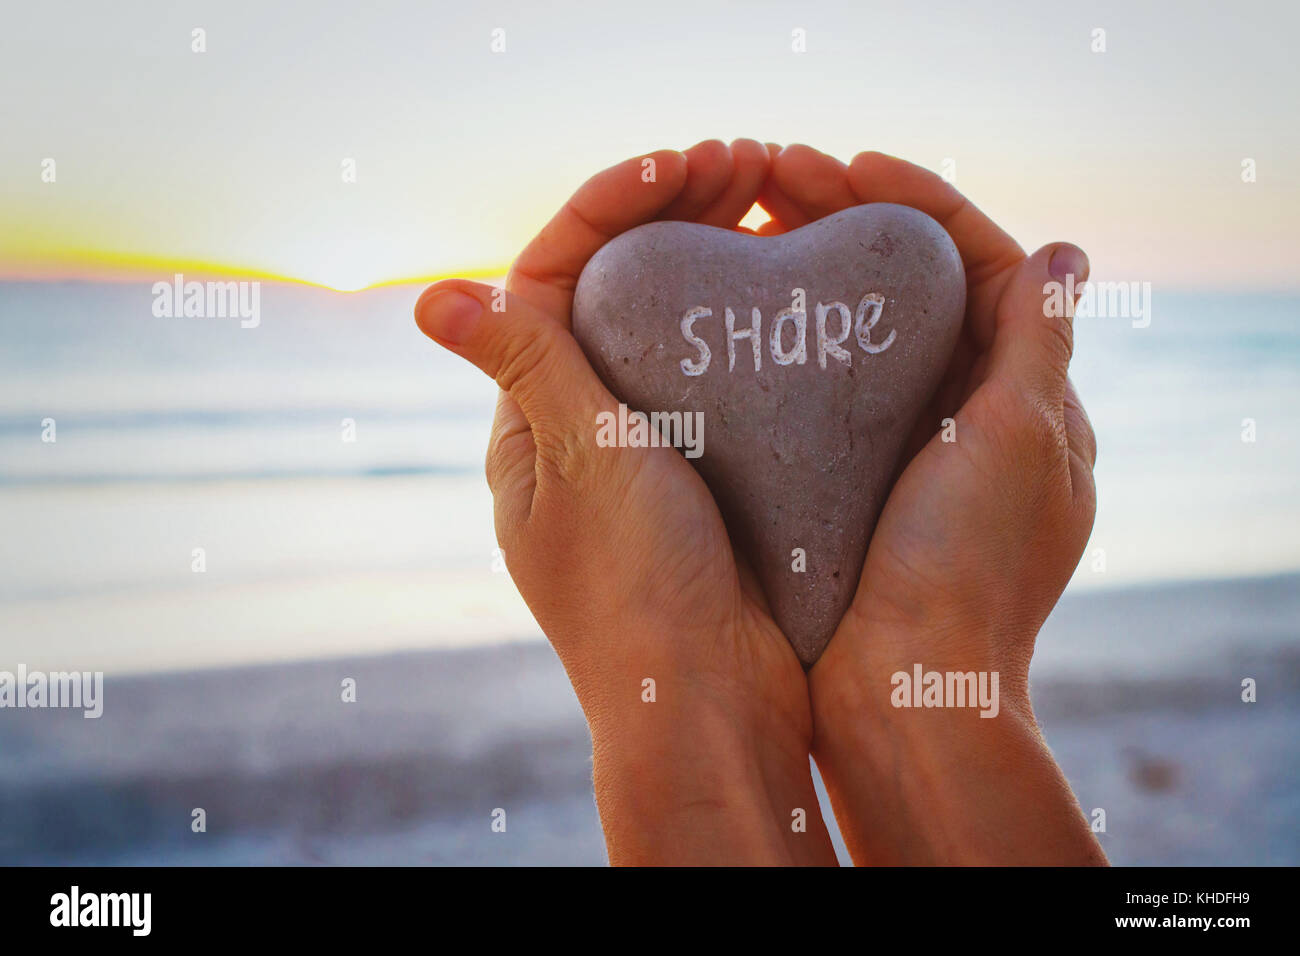 share concept, hands holding stone with word written on it - Stock Image